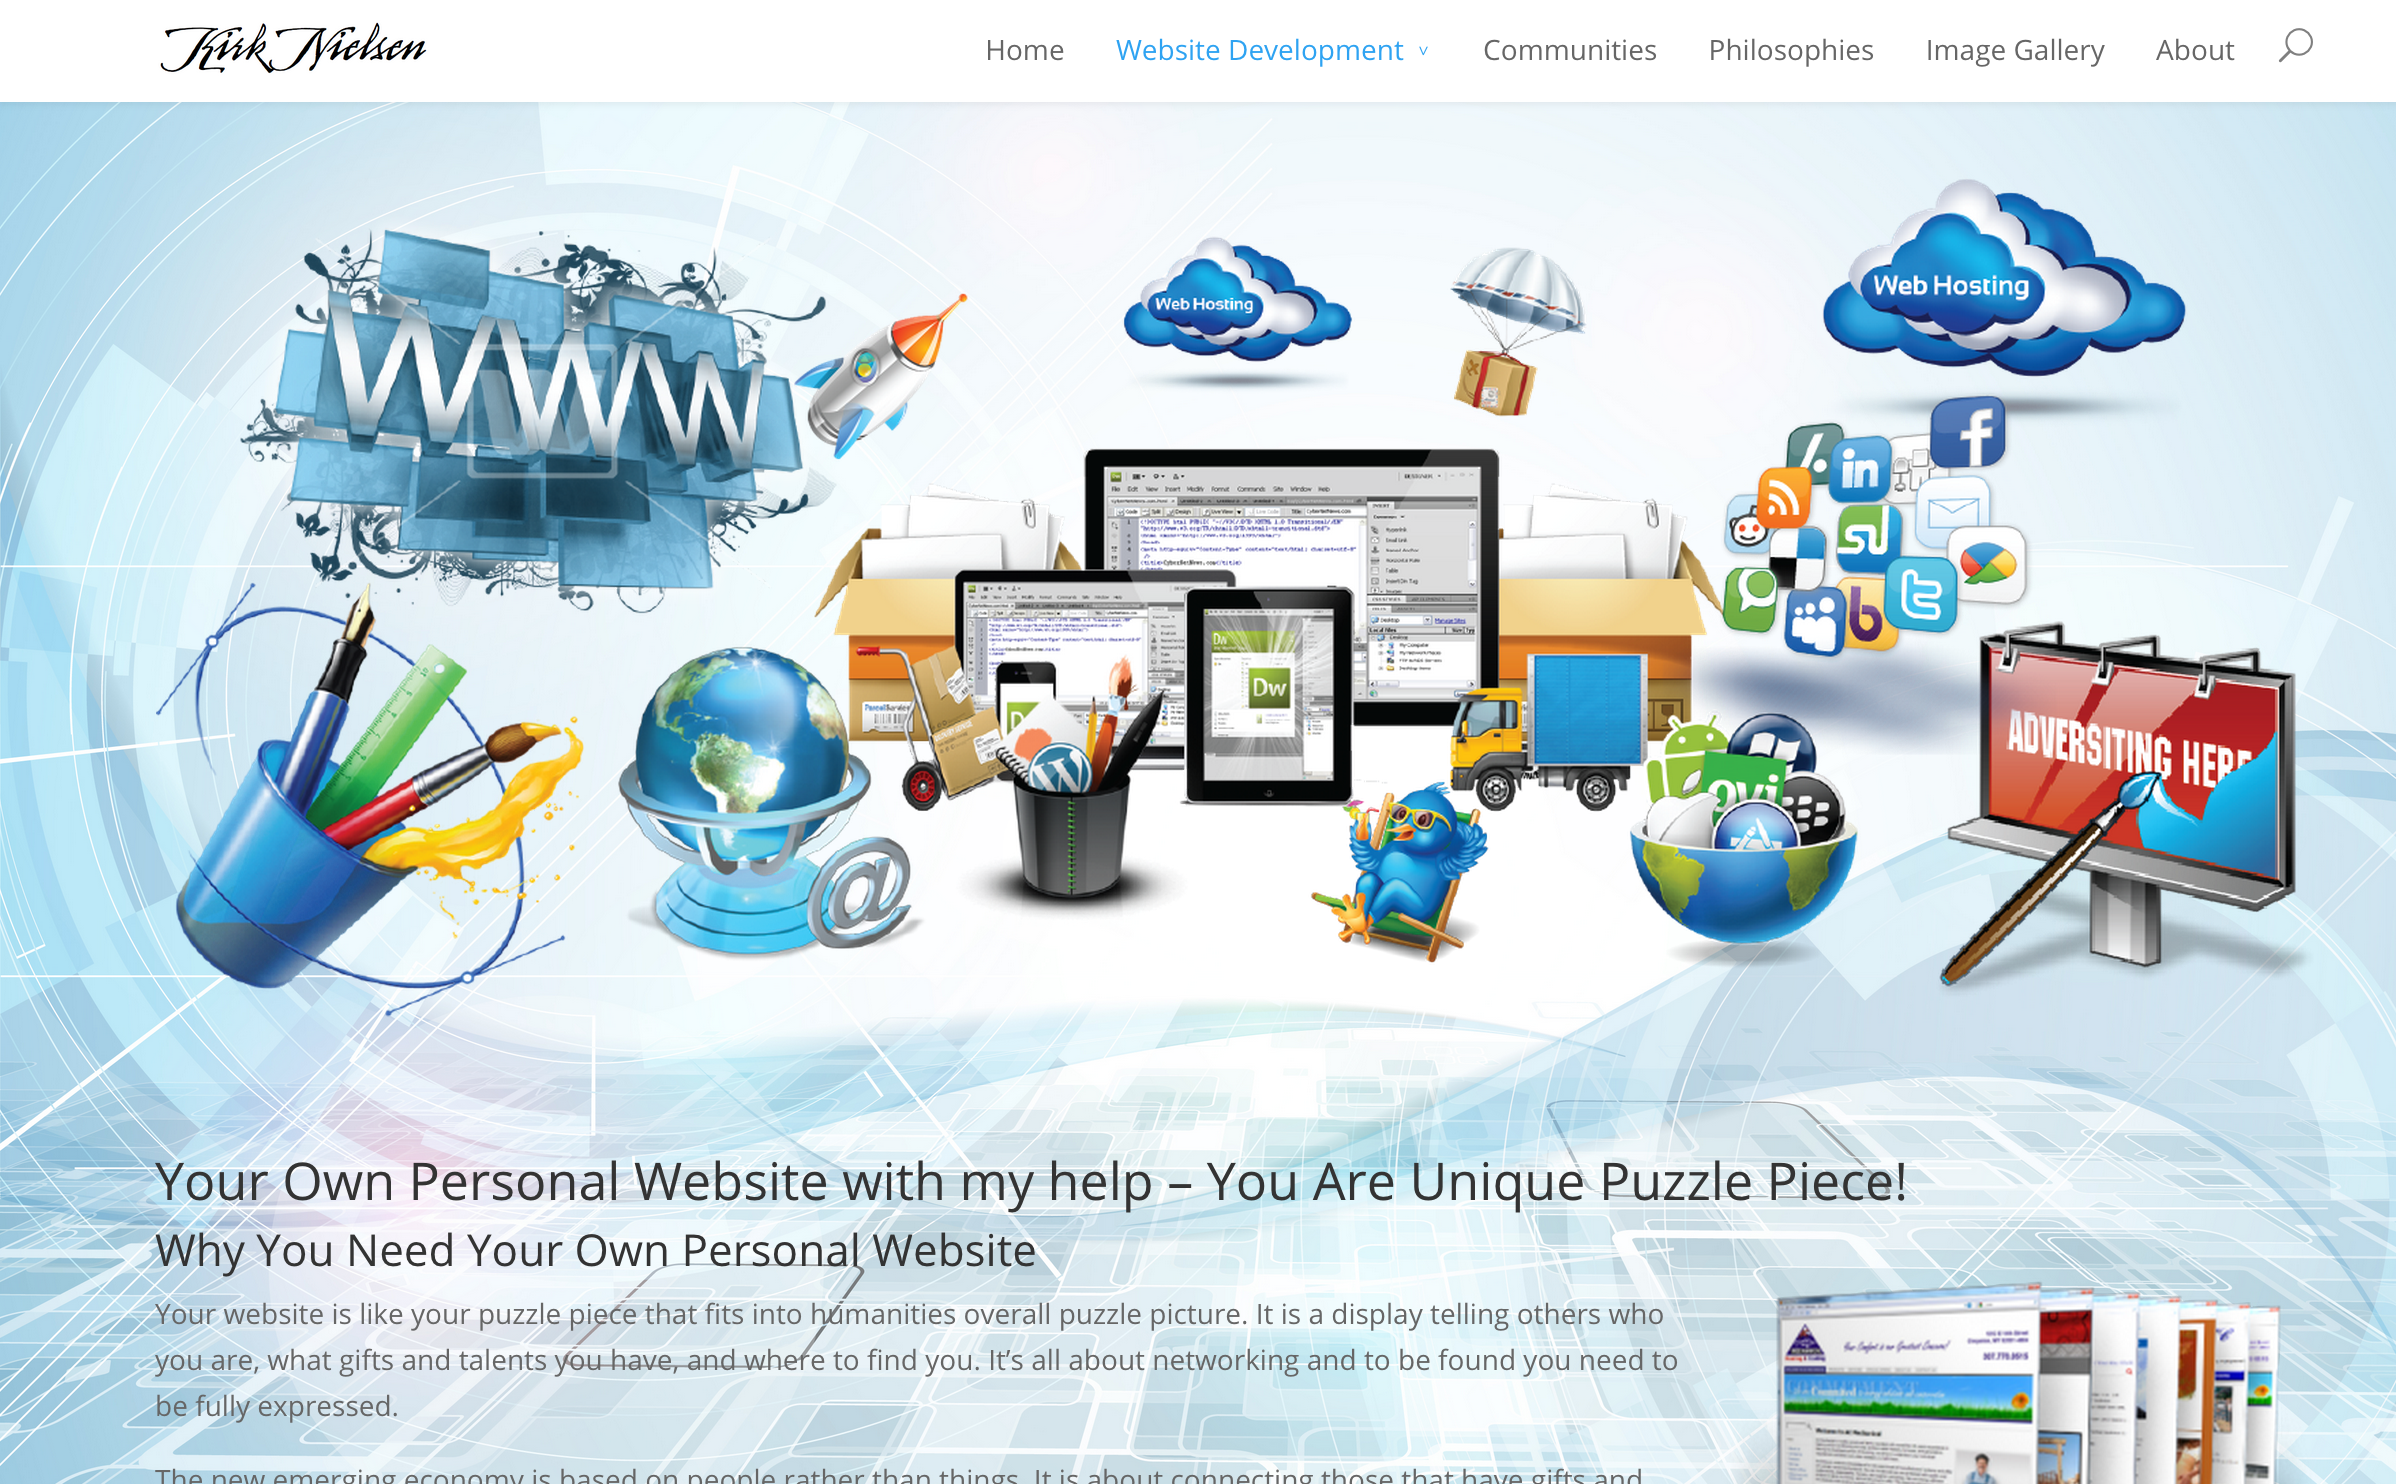 Kirk Nielsen Puzzle Piece Websites Home Page